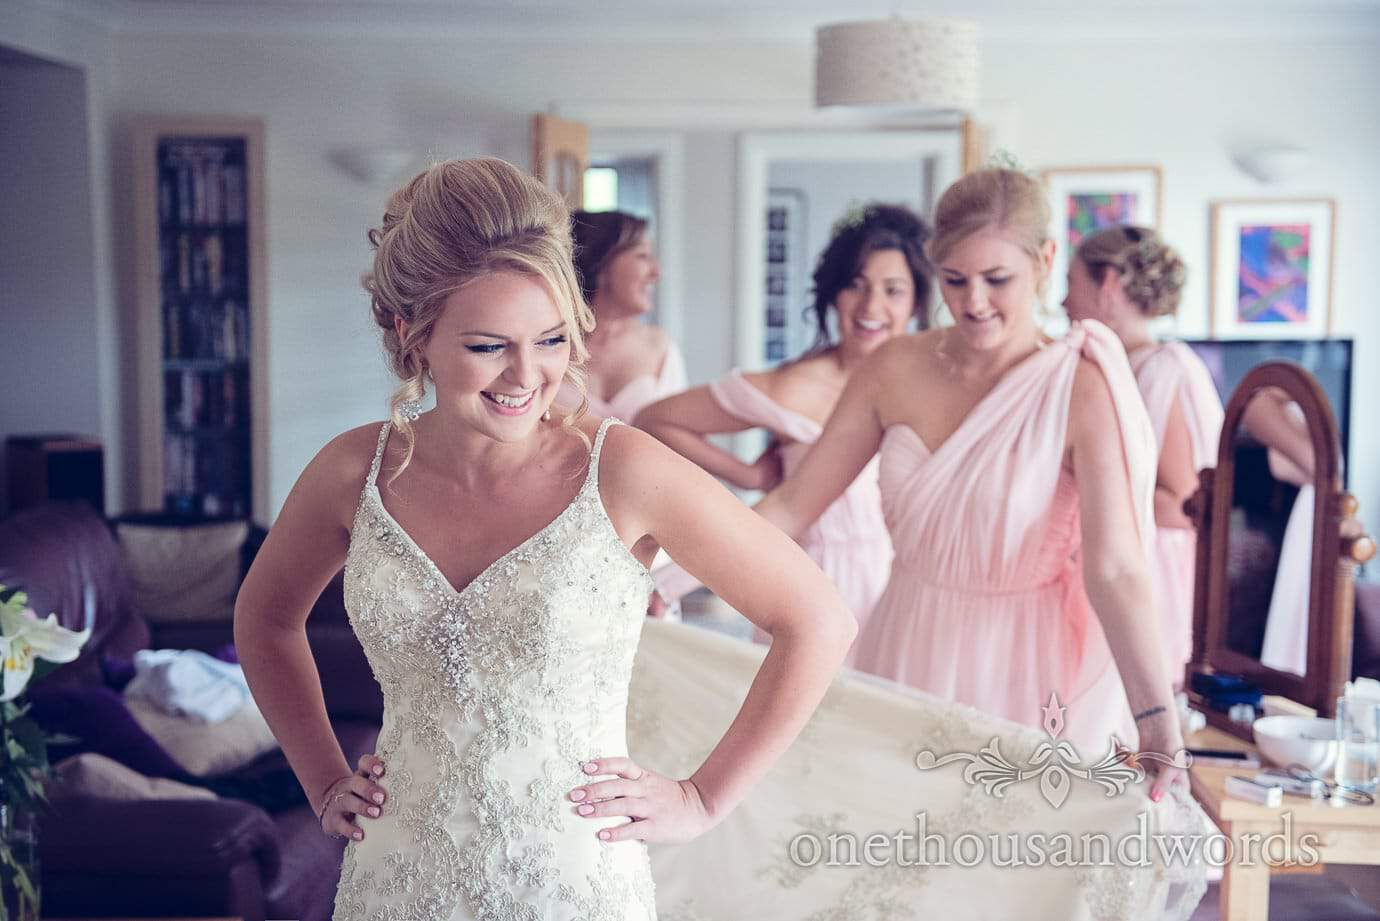 Bride in white wedding dress and bridesmaids in pink greco roman bridesmaids dresses